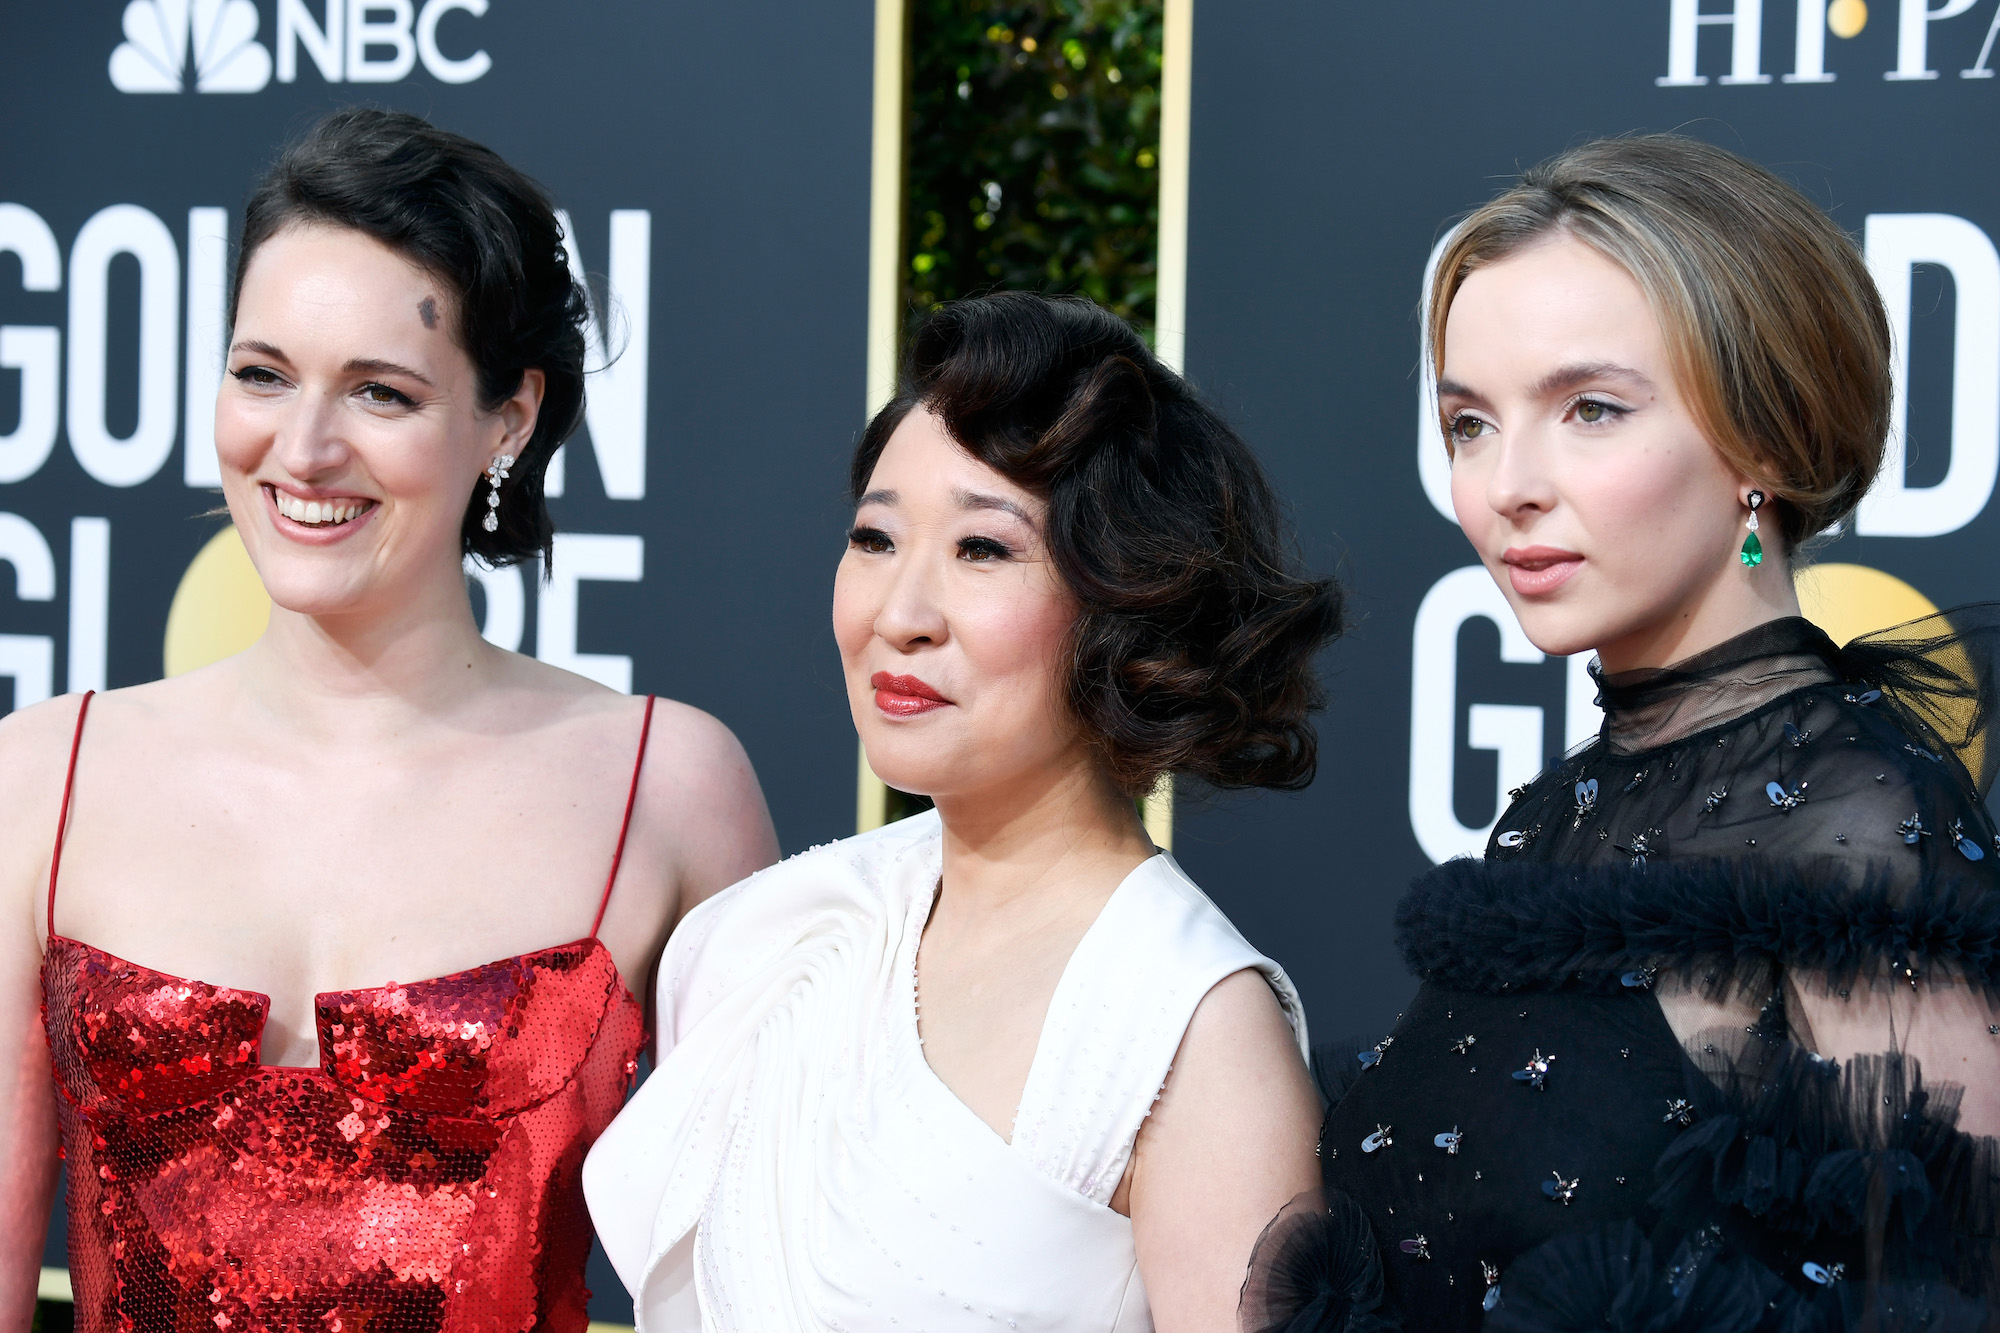 Phoebe Waller-Bridge. Sandra Oh, and Jodie Comer at the 76th Annual Golden Globe Awards on January 6, 2019.